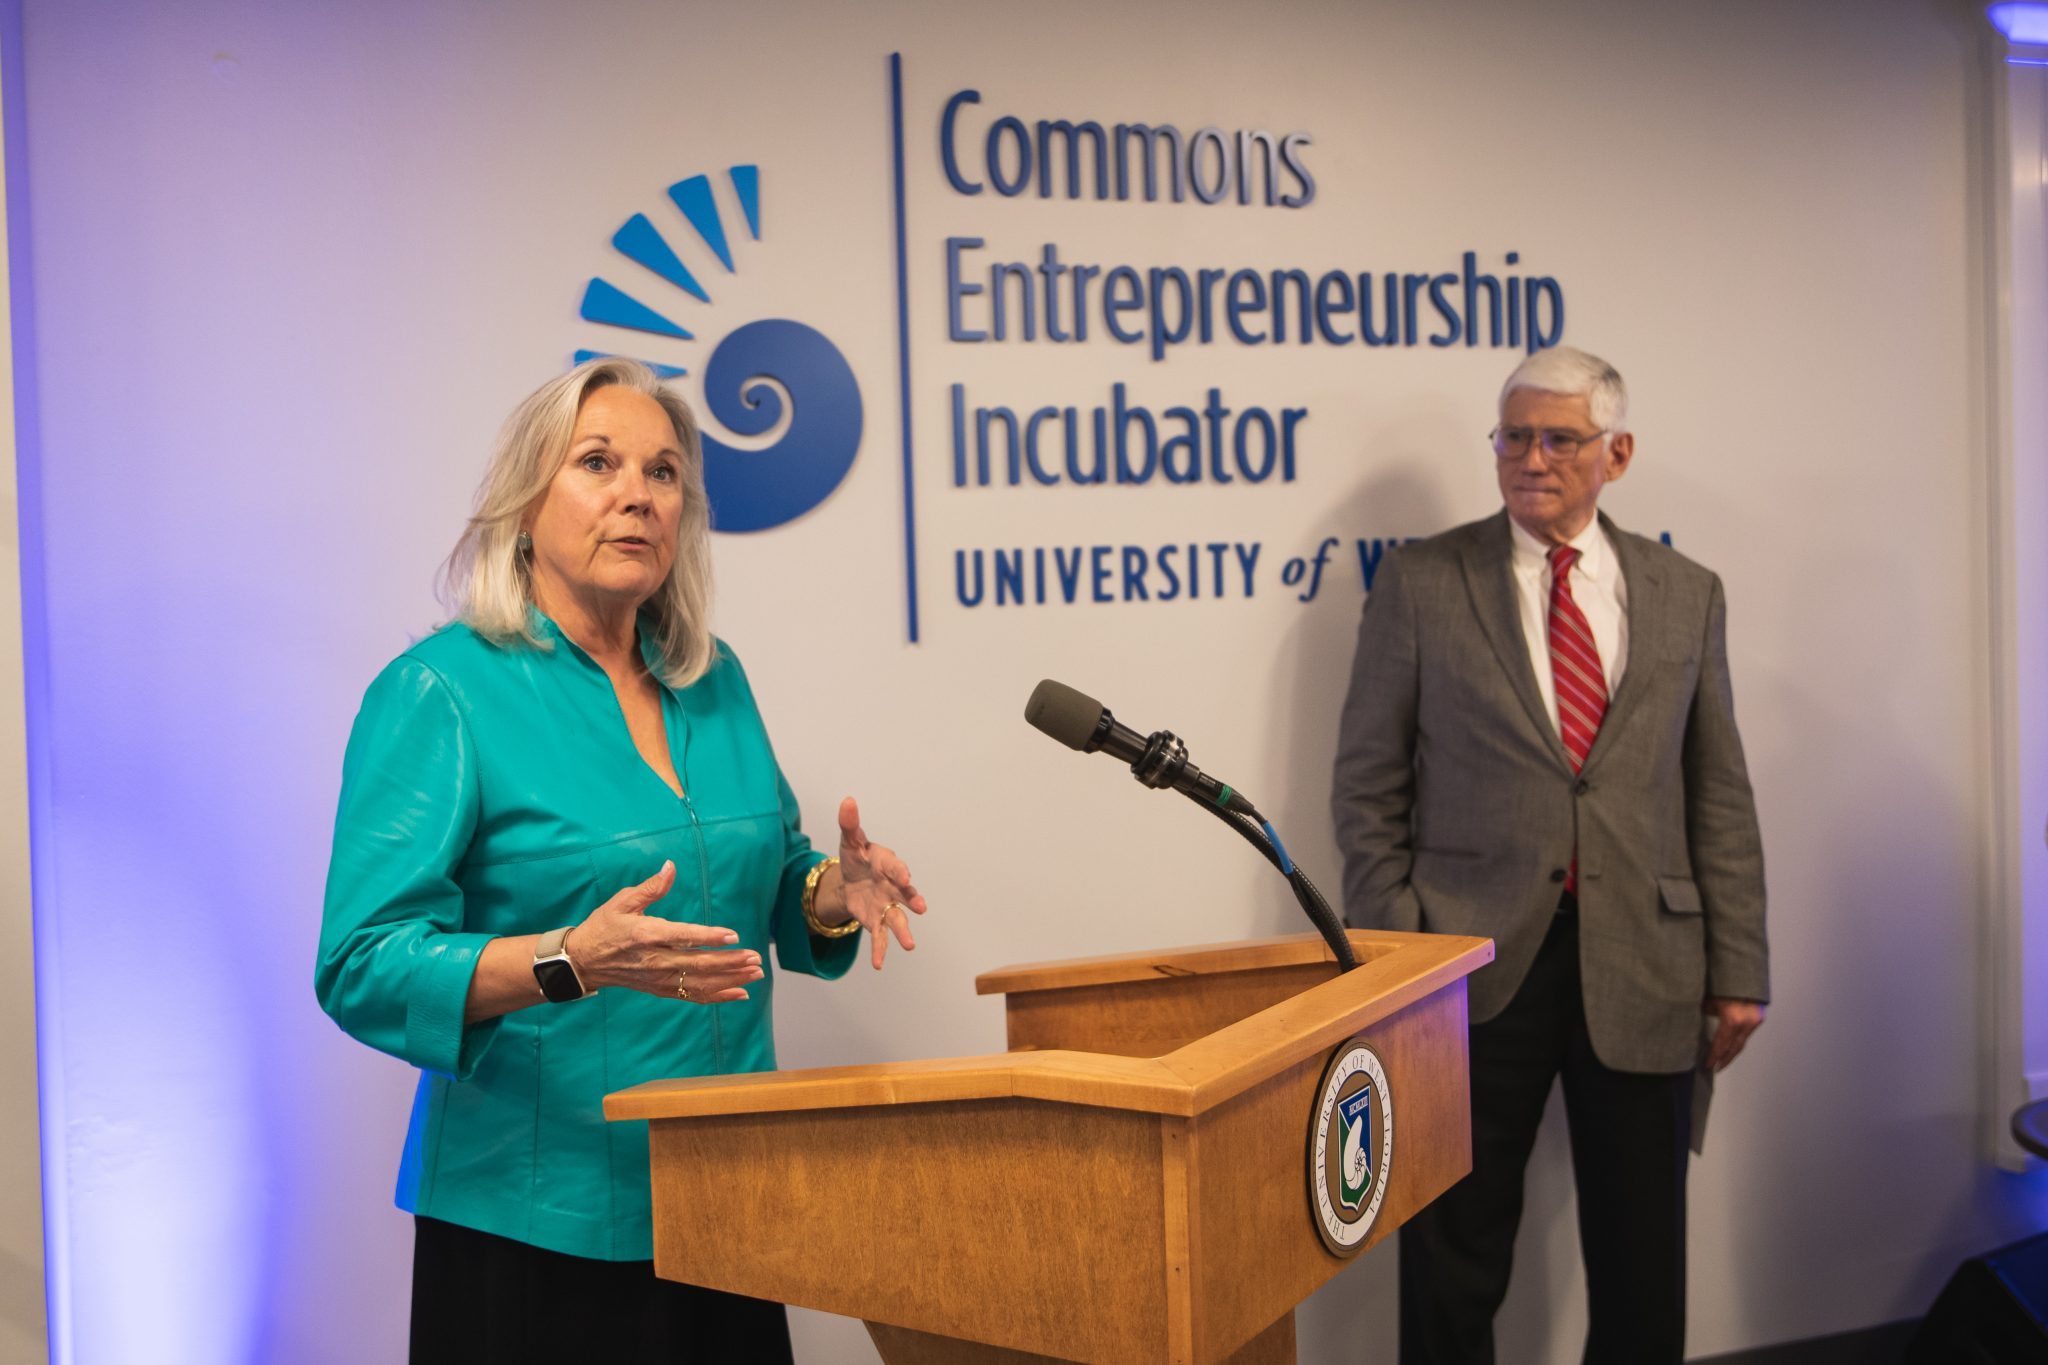 UWF President Martha Saunders during the grand opening of the Commons Entrepreneurship Incubator Grand Opening